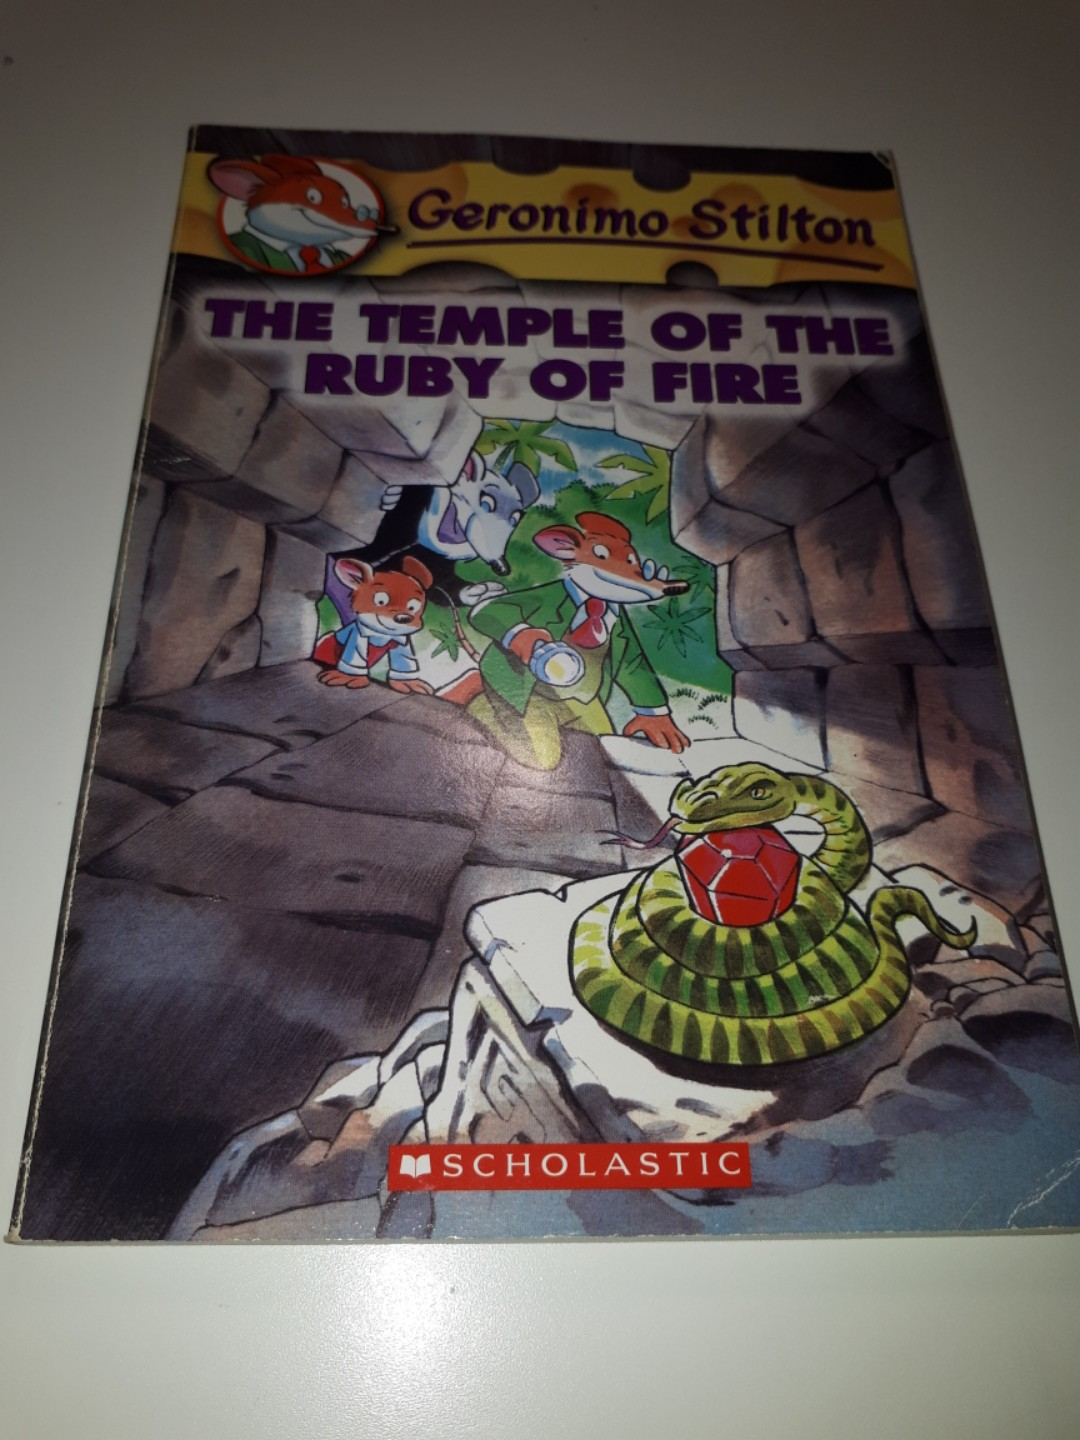 Geronimo Stilton: The Temple of The Ruby of Fire, Books & Stationery,  Children's Books on Carousell